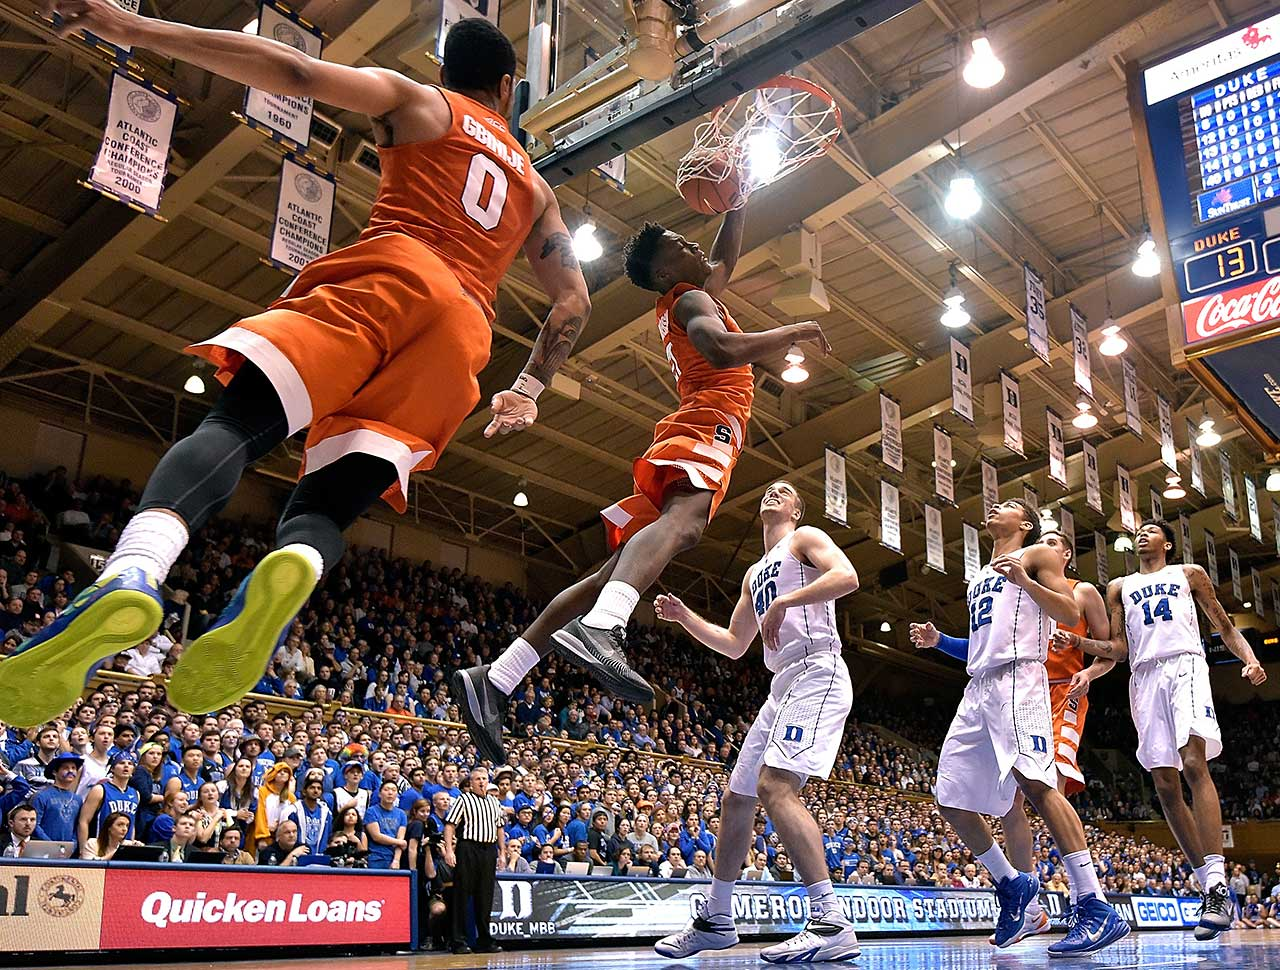 Tyler Roberson of the Syracuse Orange dunks over Marshall Plumlee of Duke.